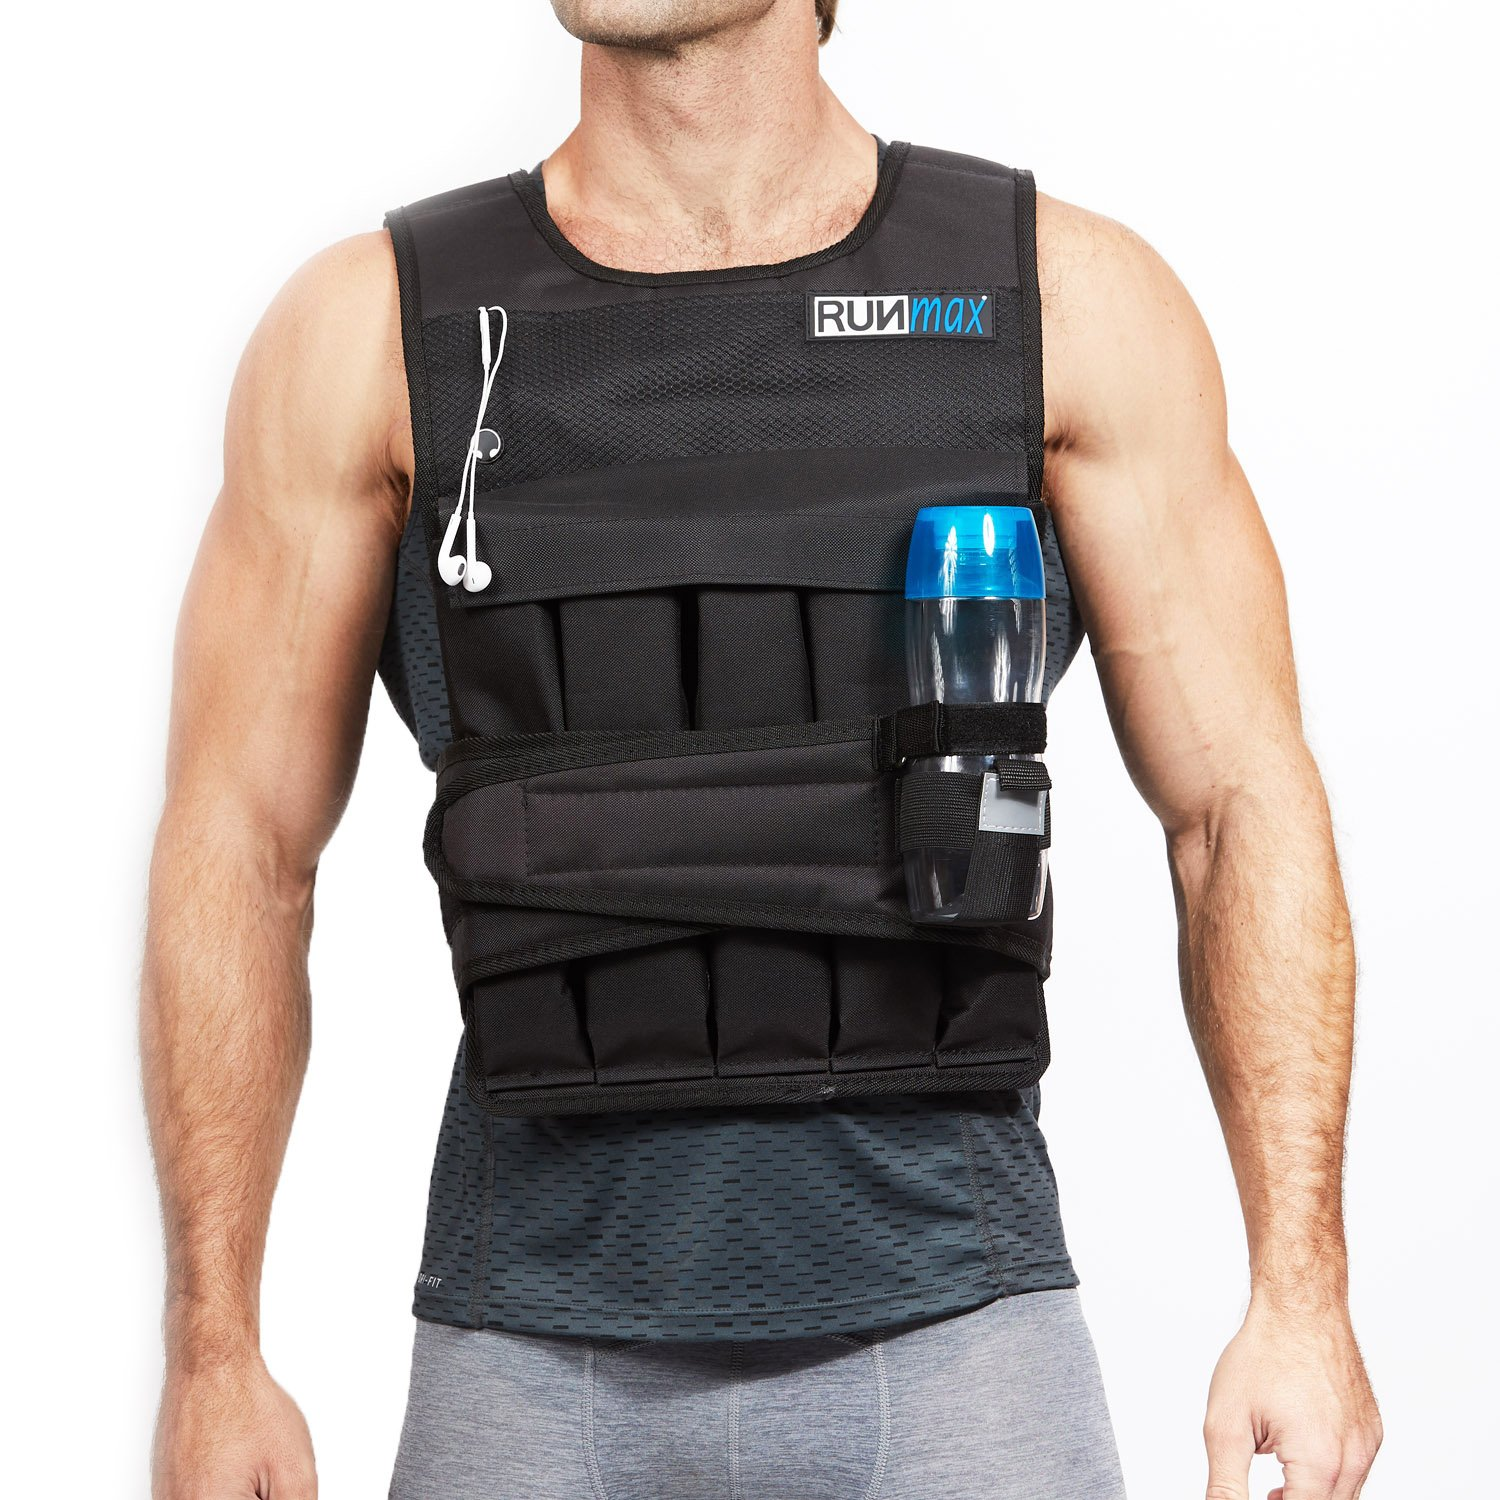 RUNFast Pro Weighted Vest 12lbs-60lbs (Without Shoulder Pads, 50 LB) by RUNmax (Image #2)